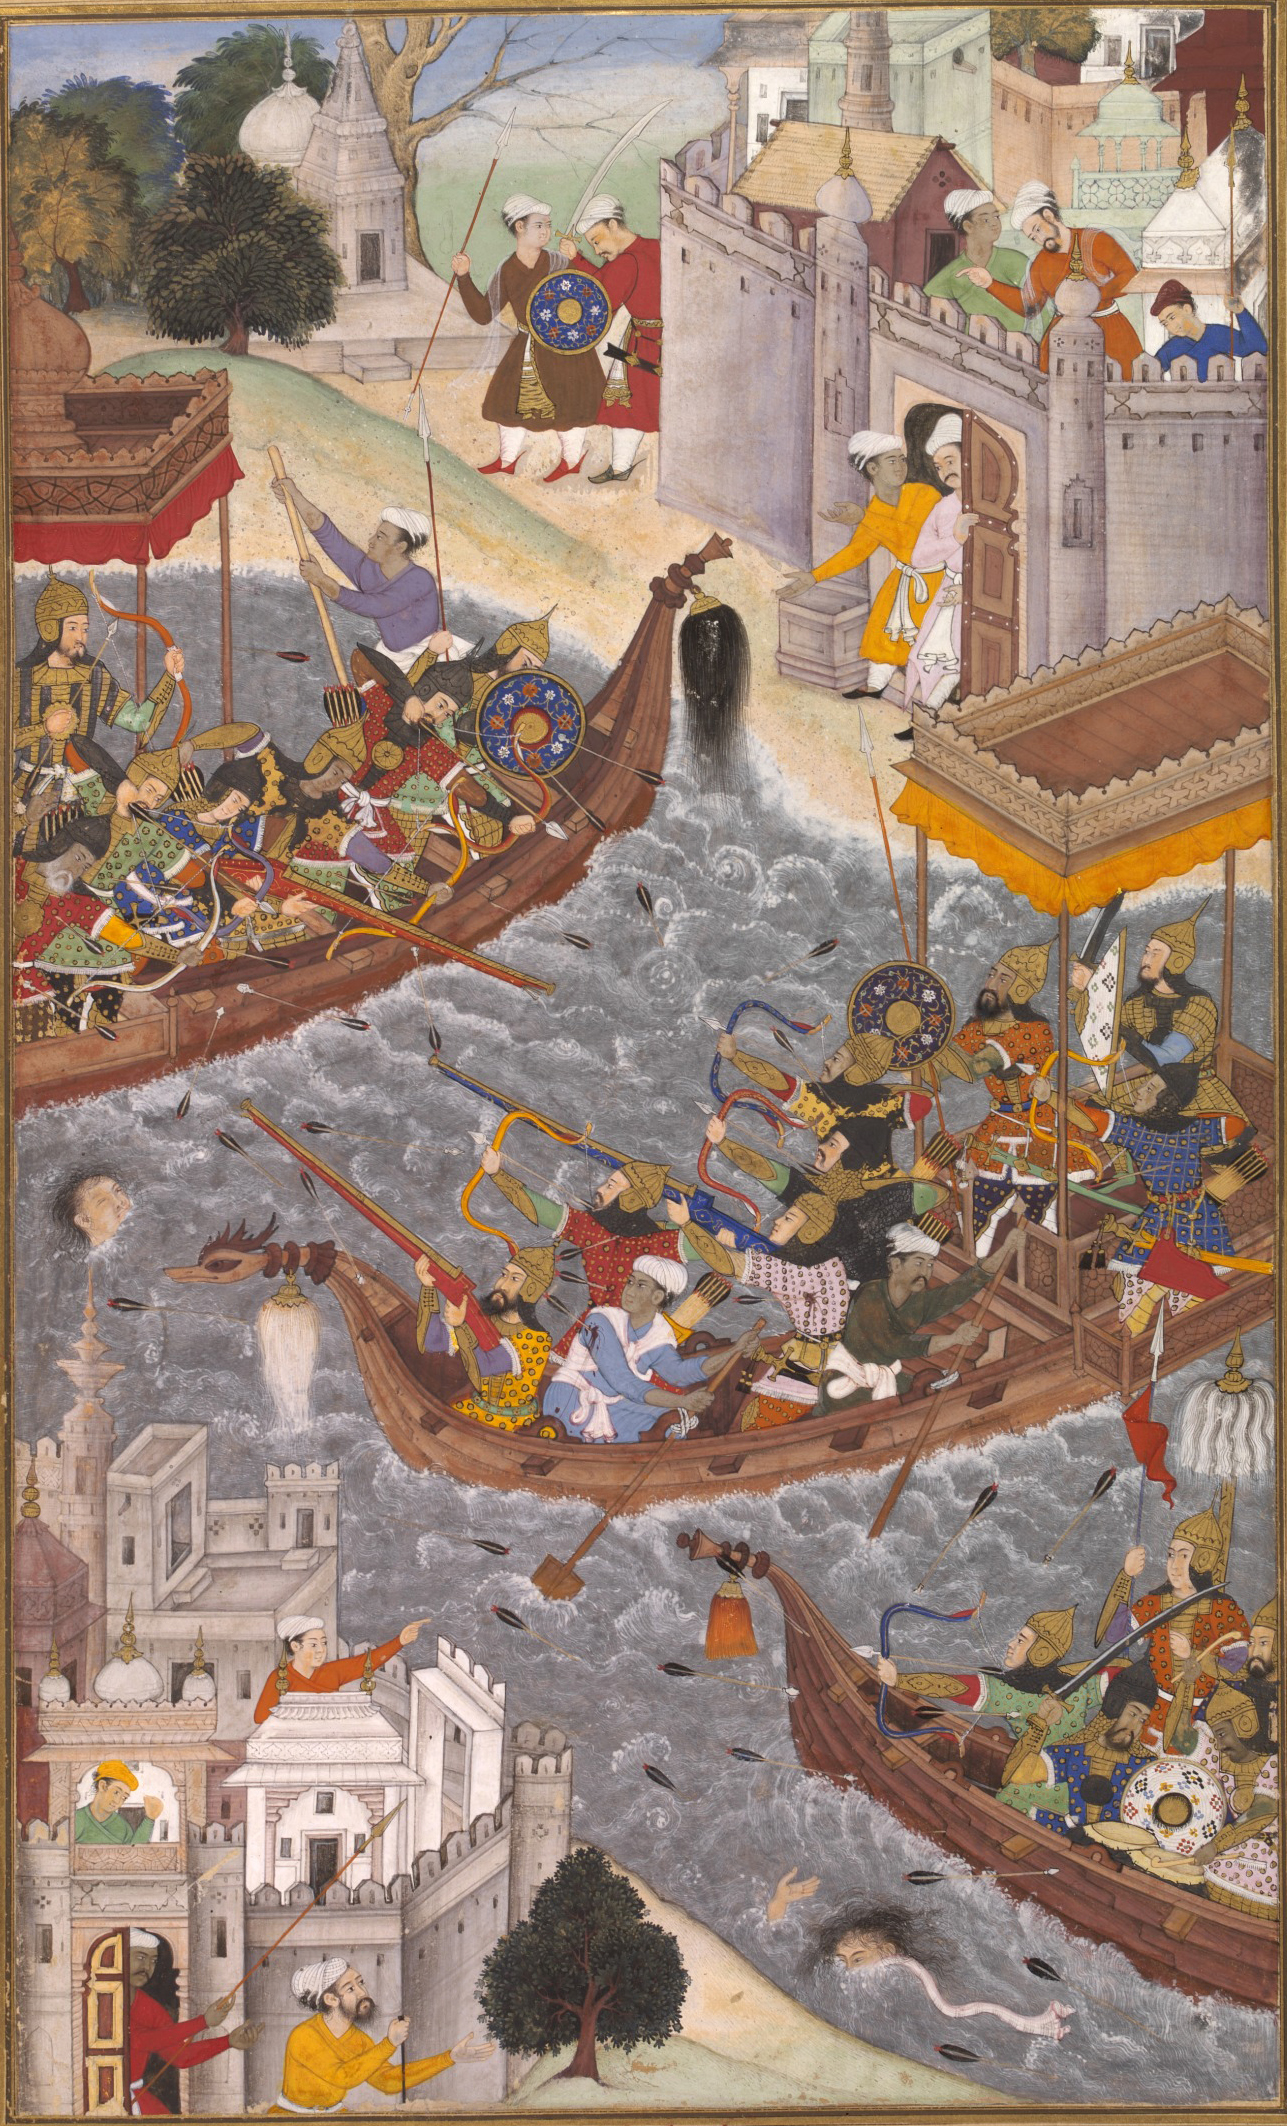 1565-battle_scene_with_boats_on_the_ganges-akbarnama